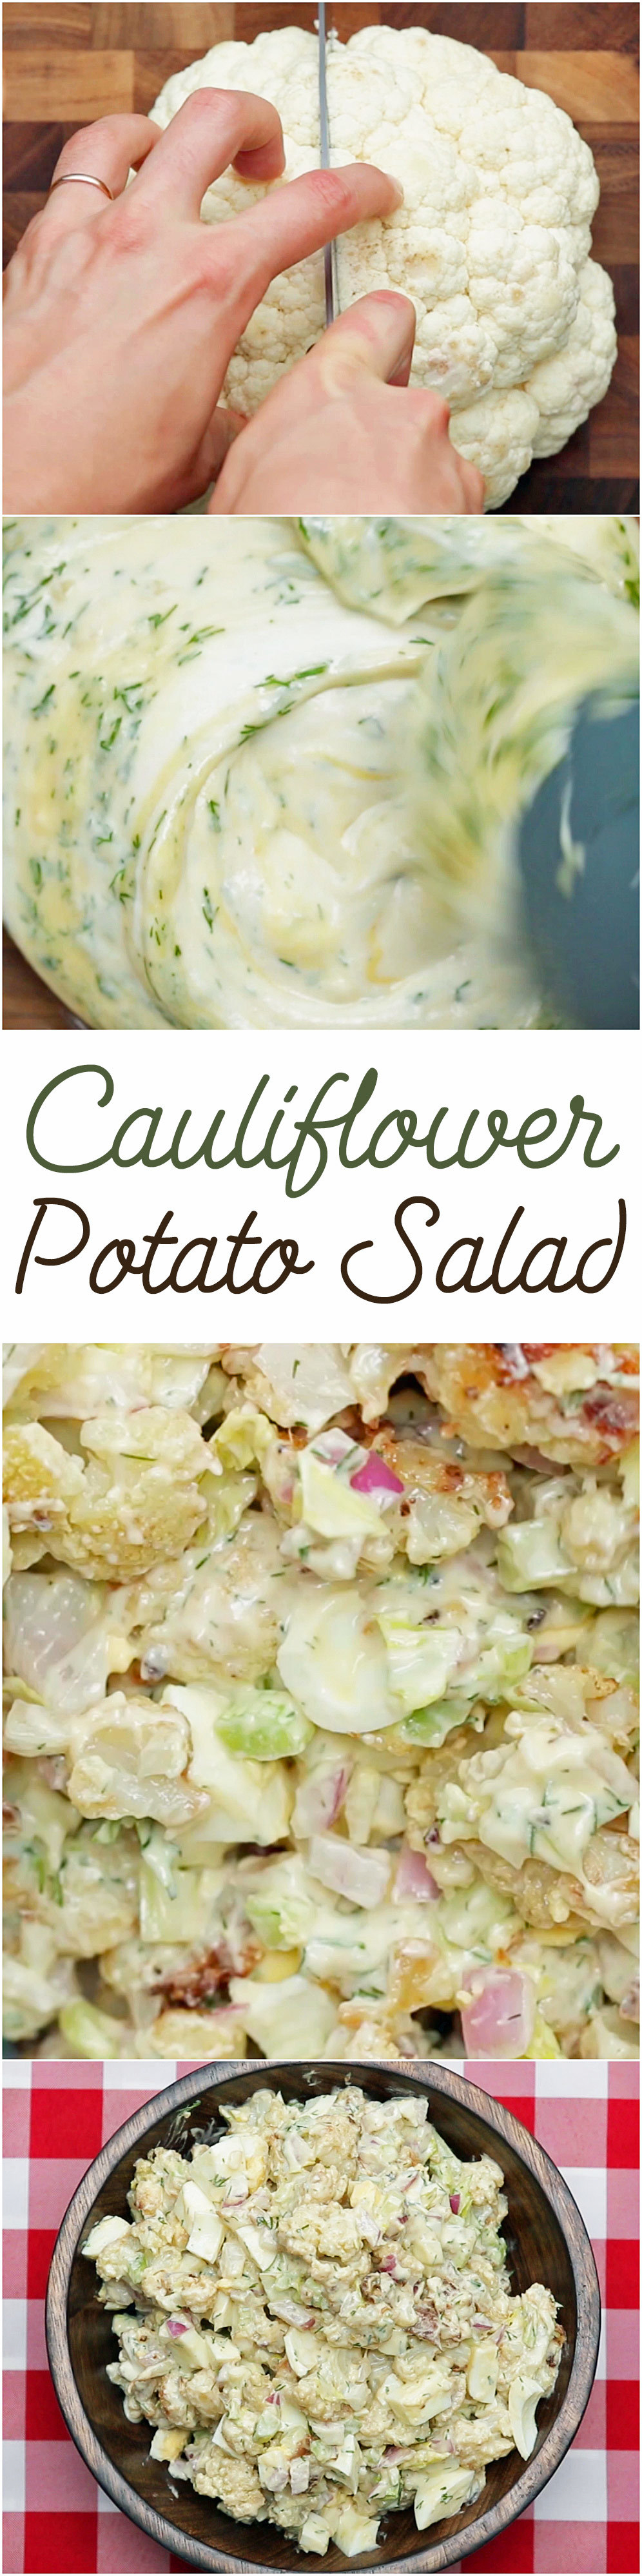 Here's Why Cauliflower Is The Best Addition To Potato Salad